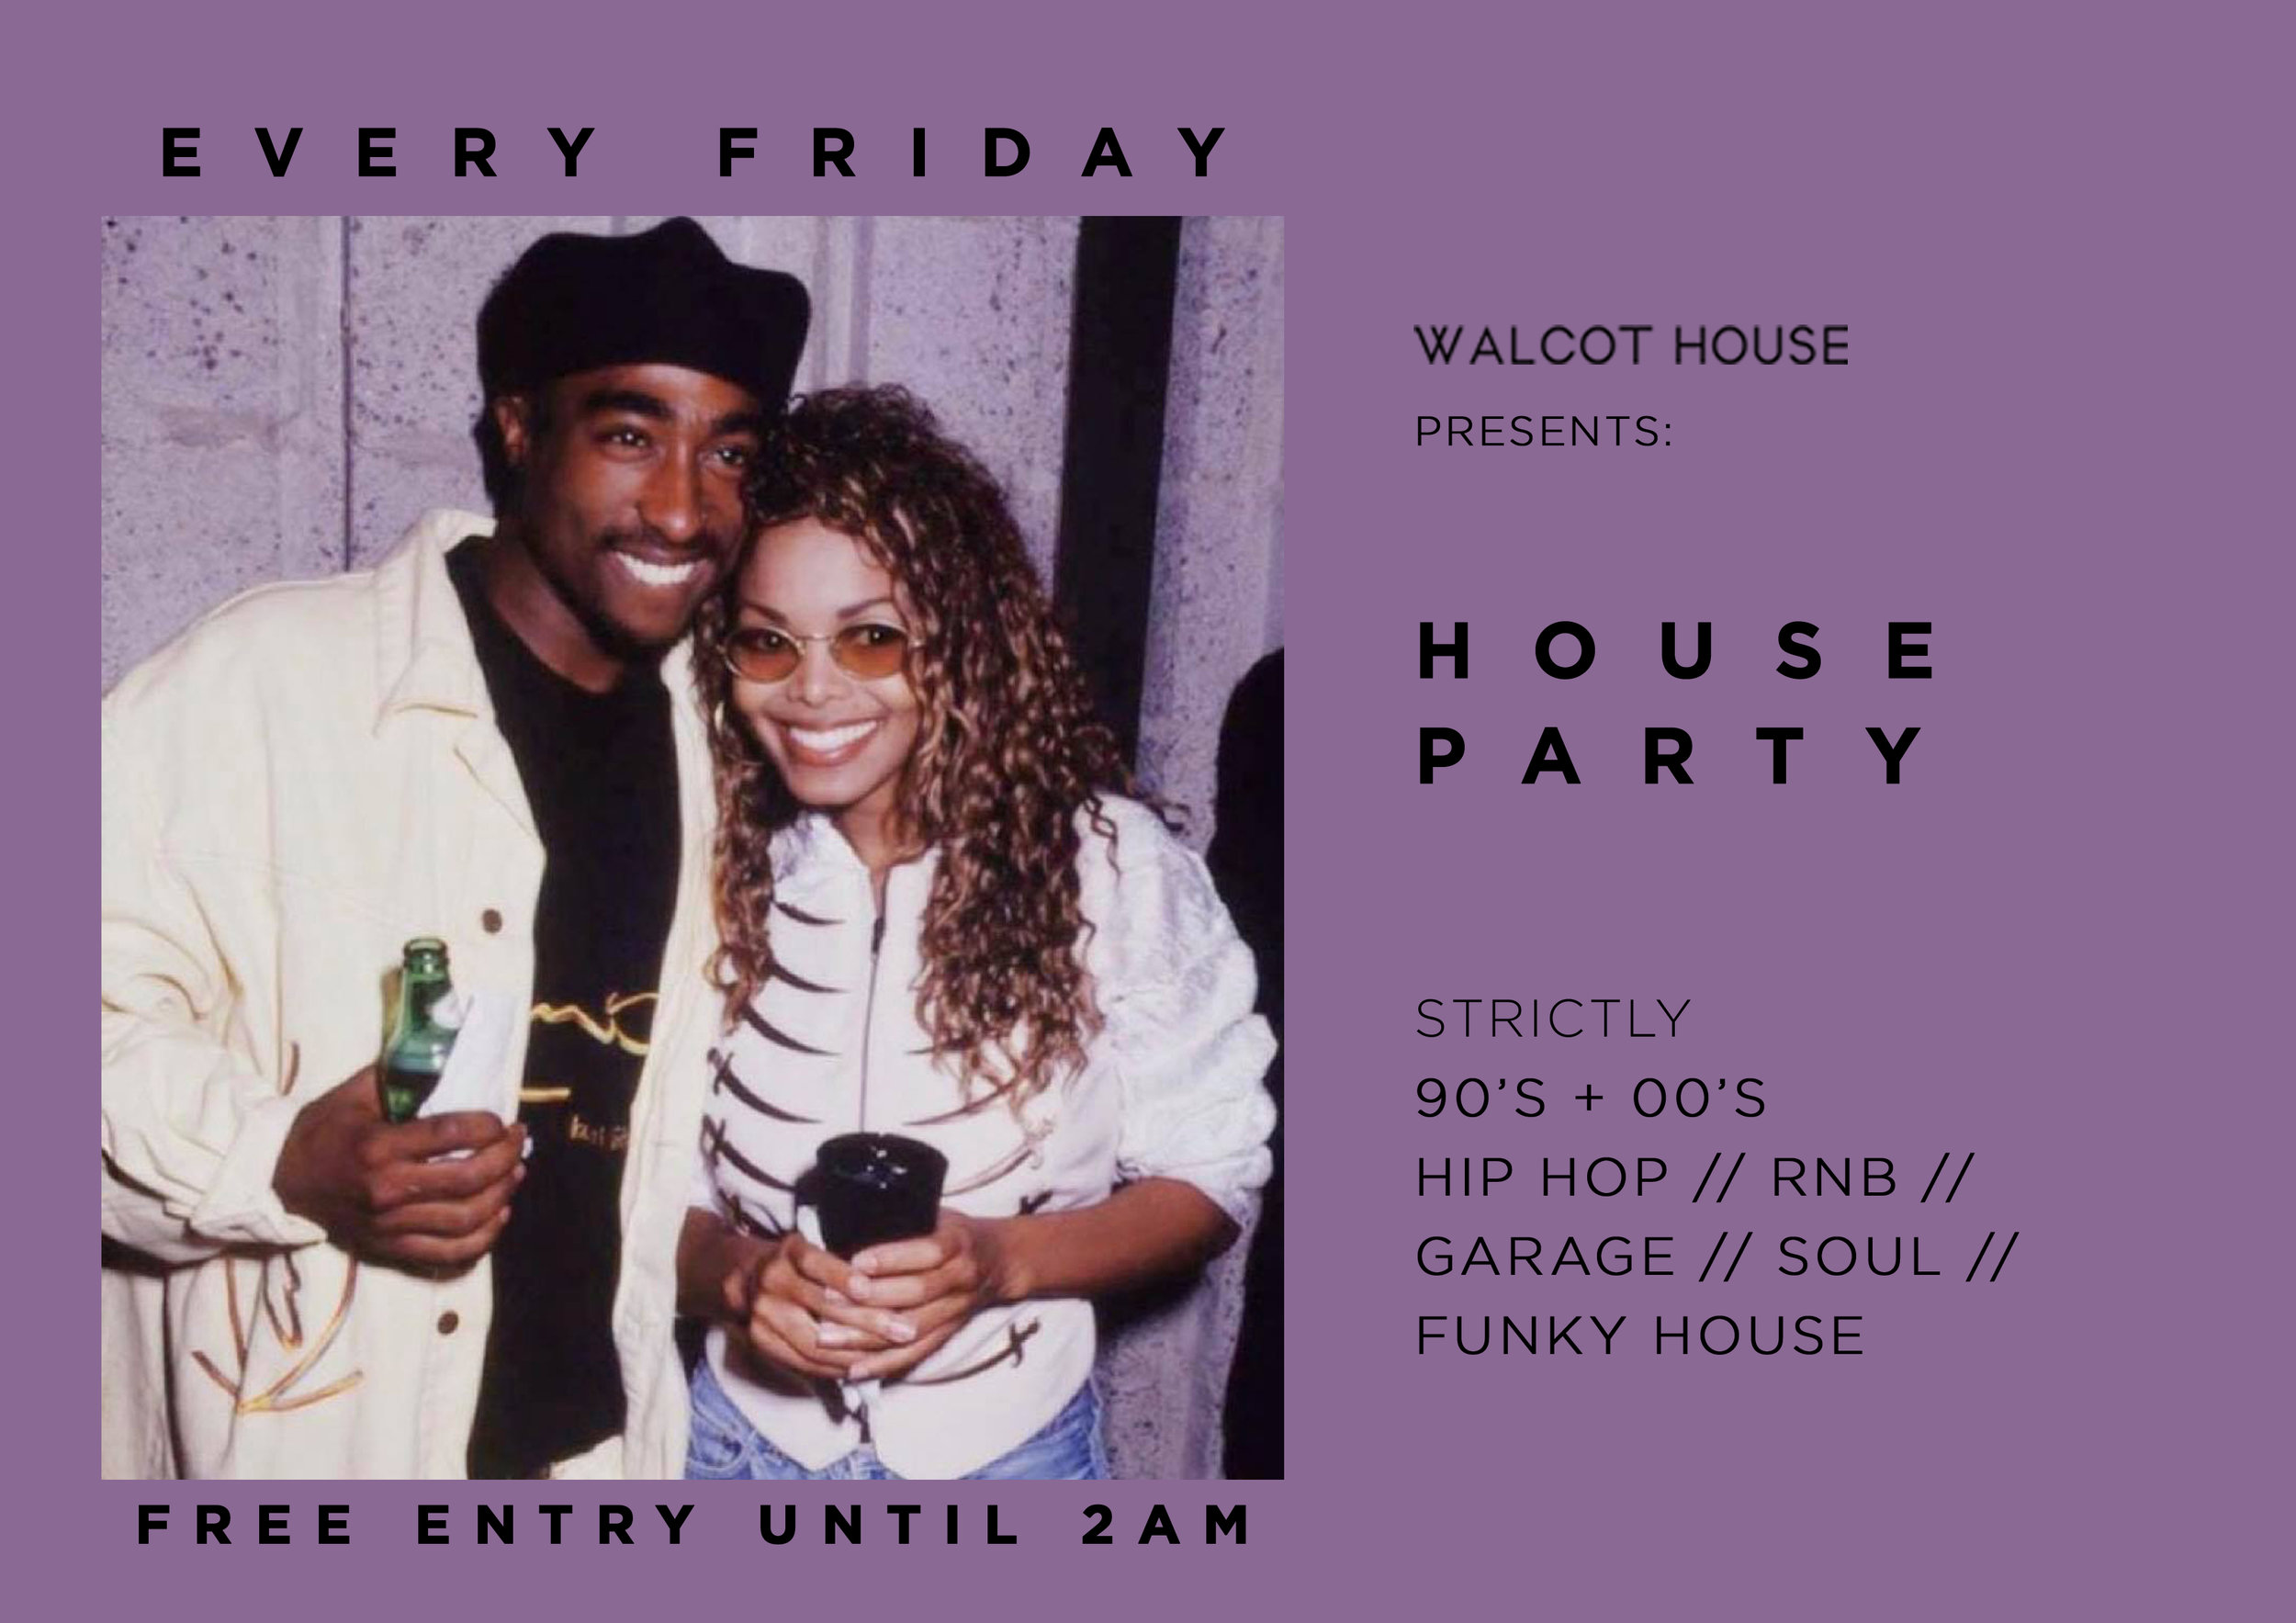 HOUSE PARTY FLYER 2 pac .jpg